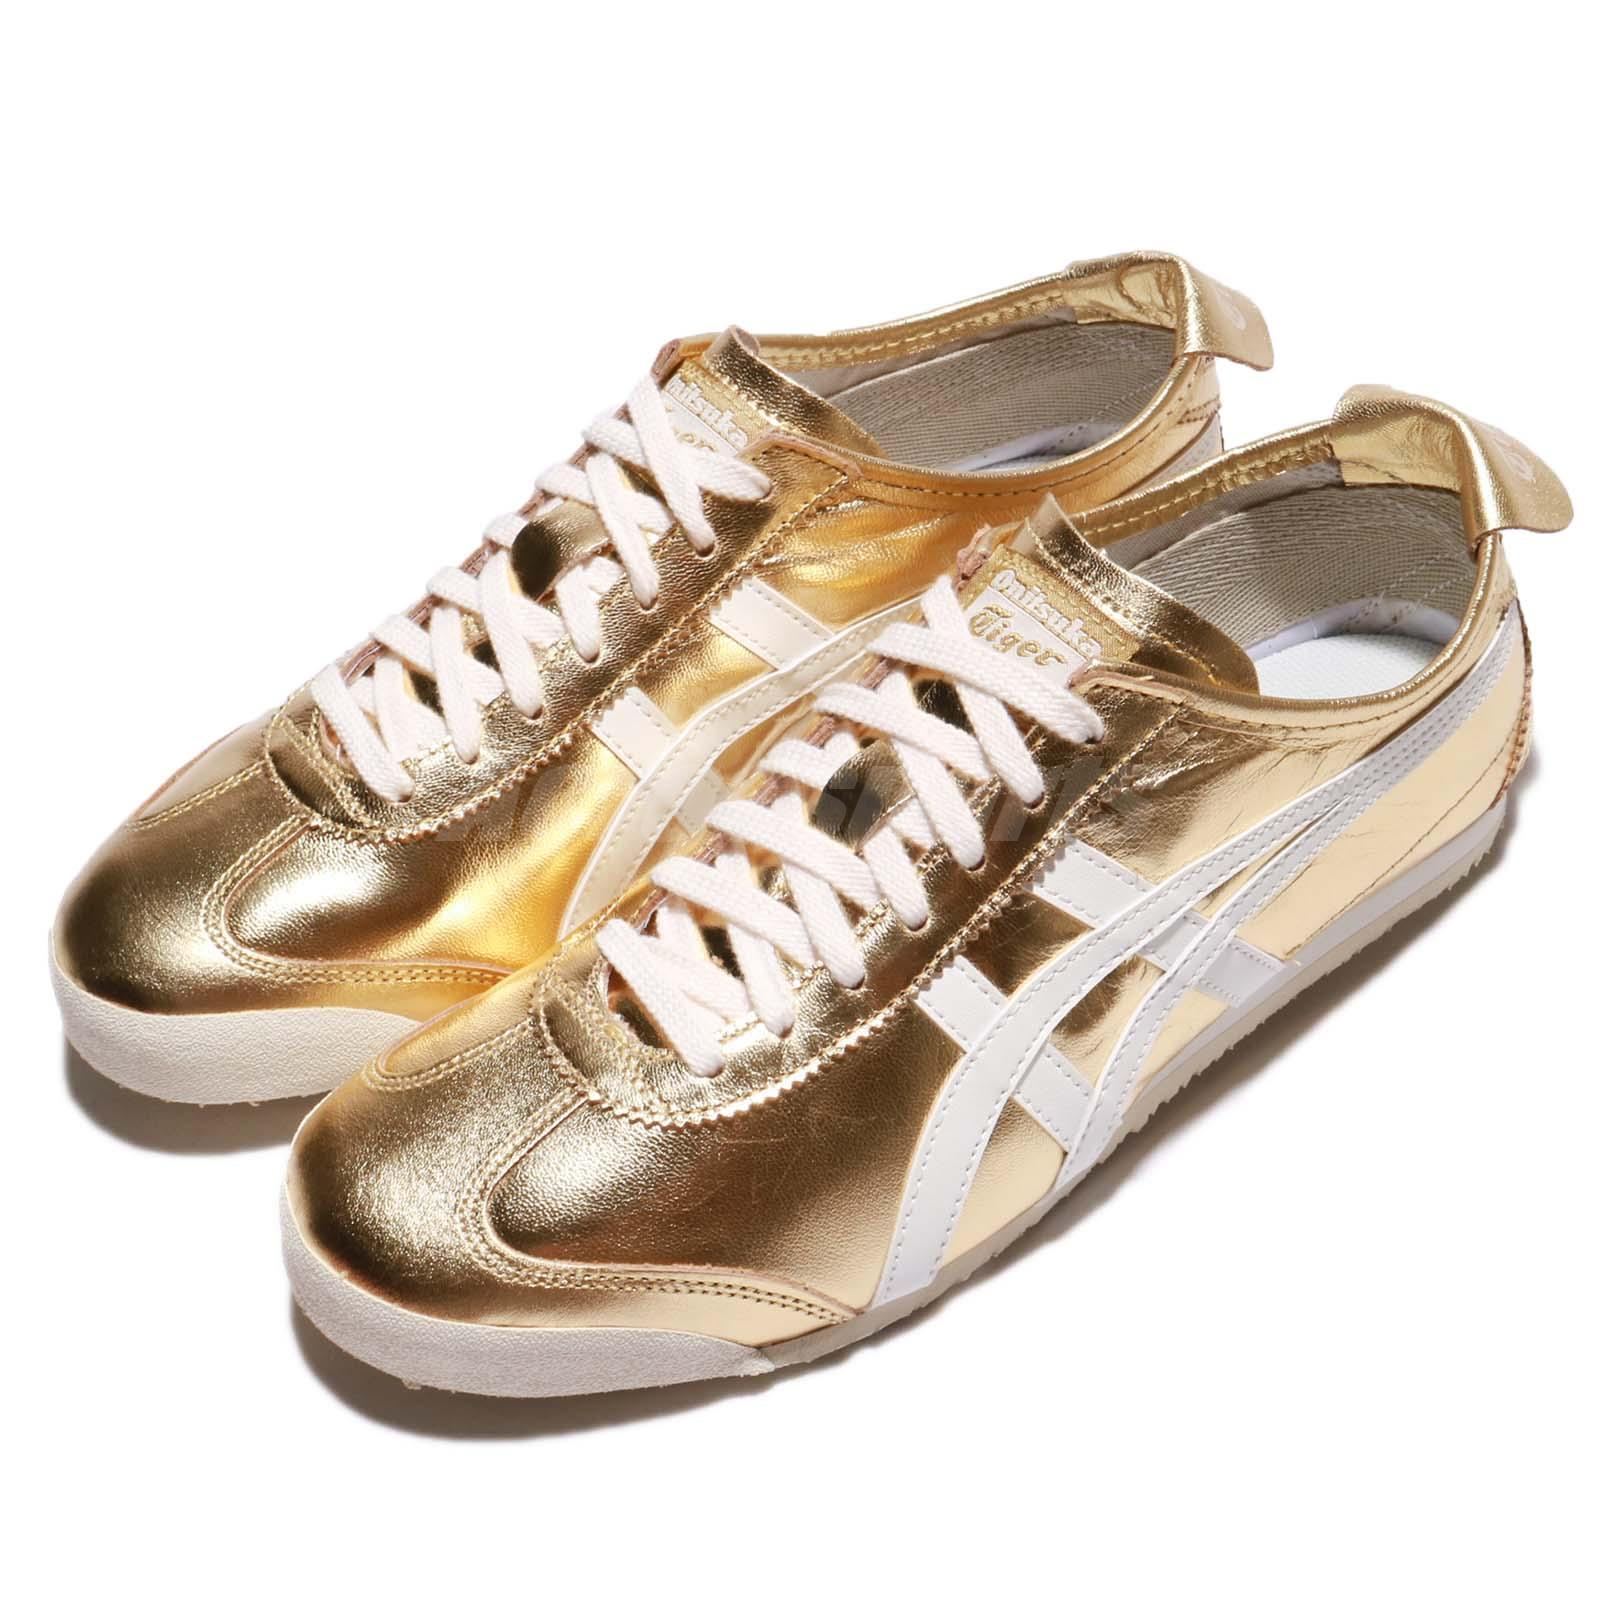 Details about Asics Onitsuka Tiger Mexico 66 Gold White Men Casual Shoes Sneakers THL7C2-9401